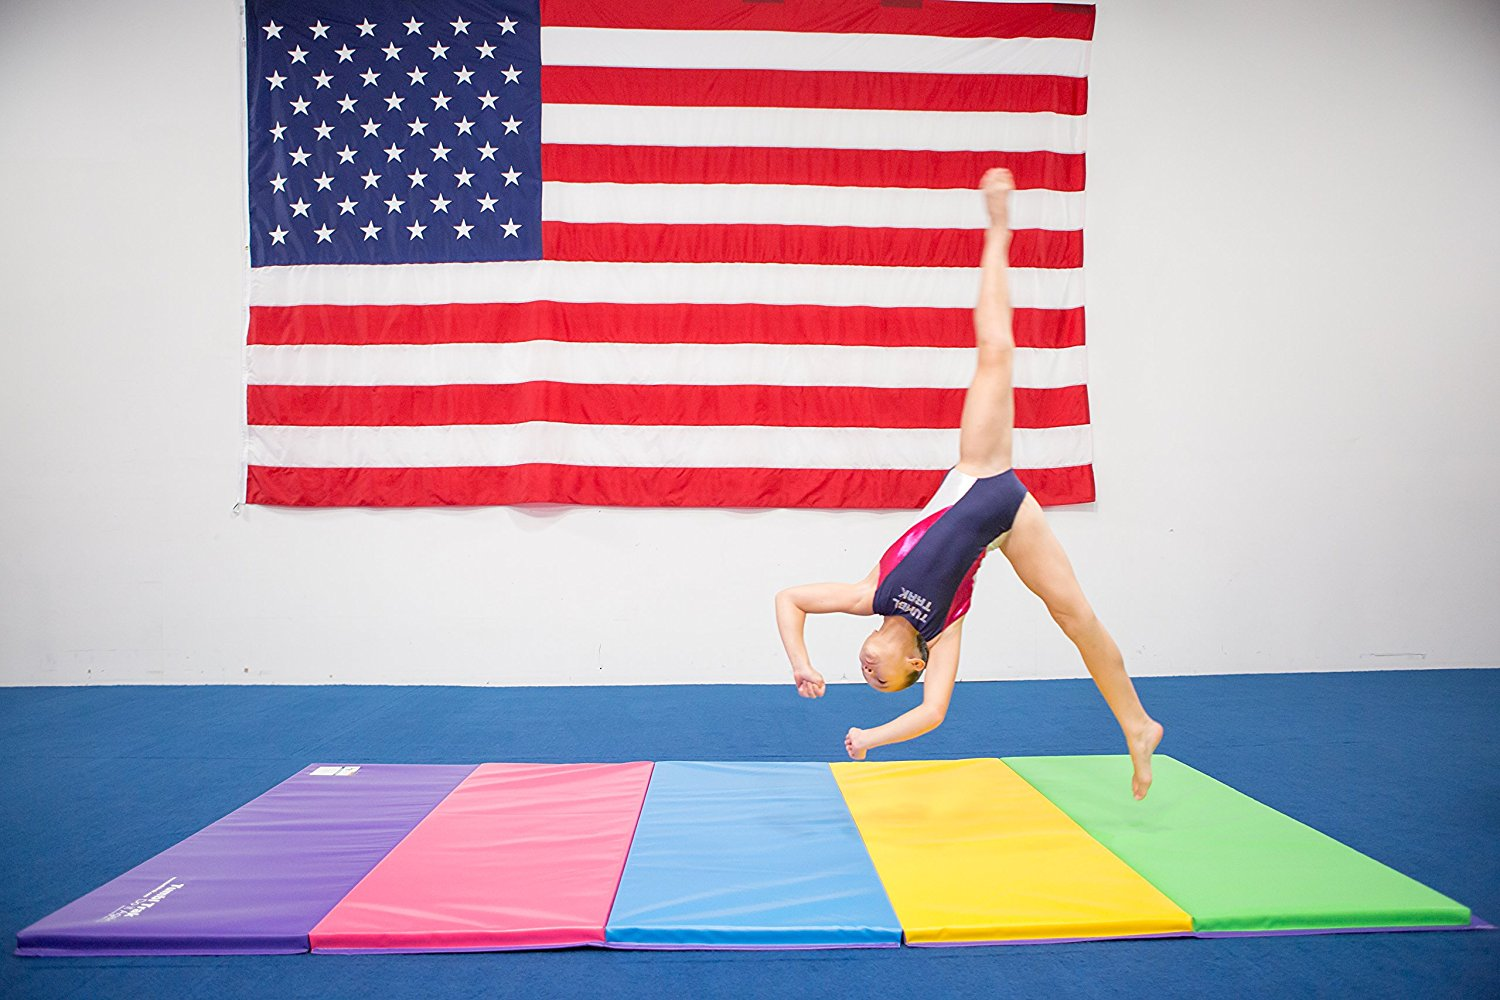 Who's it for: dancers of any age who love to tumble!  These acro mats  ($189) may be a little pricey, but the quality is worth it. The foam inside the mat is much more dense than many cheaper options, making it safer for dancers to land tricks on. There are several size and color options to find the right fit for you, too. This is something you can pass down for years and years!